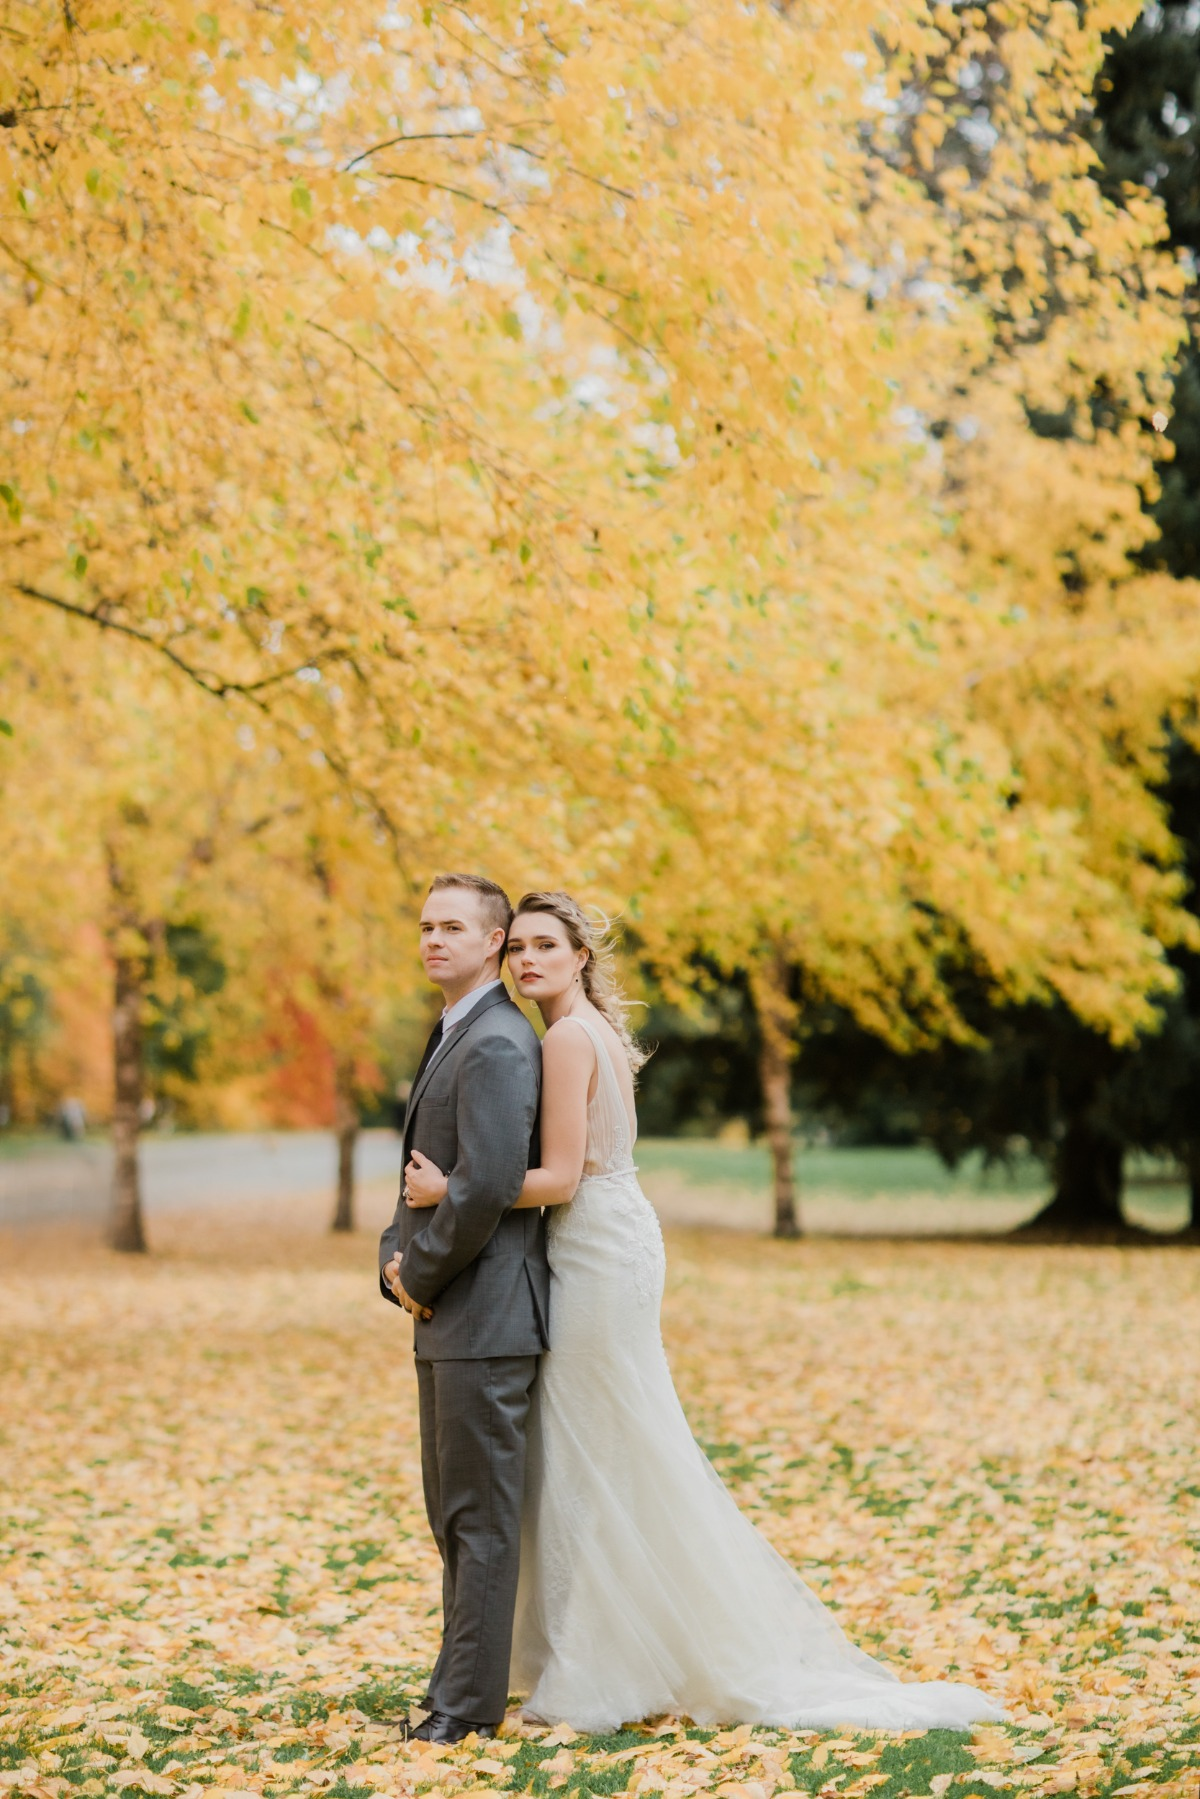 Warm and Intimate Elopement with Fall Foliage in Seattle